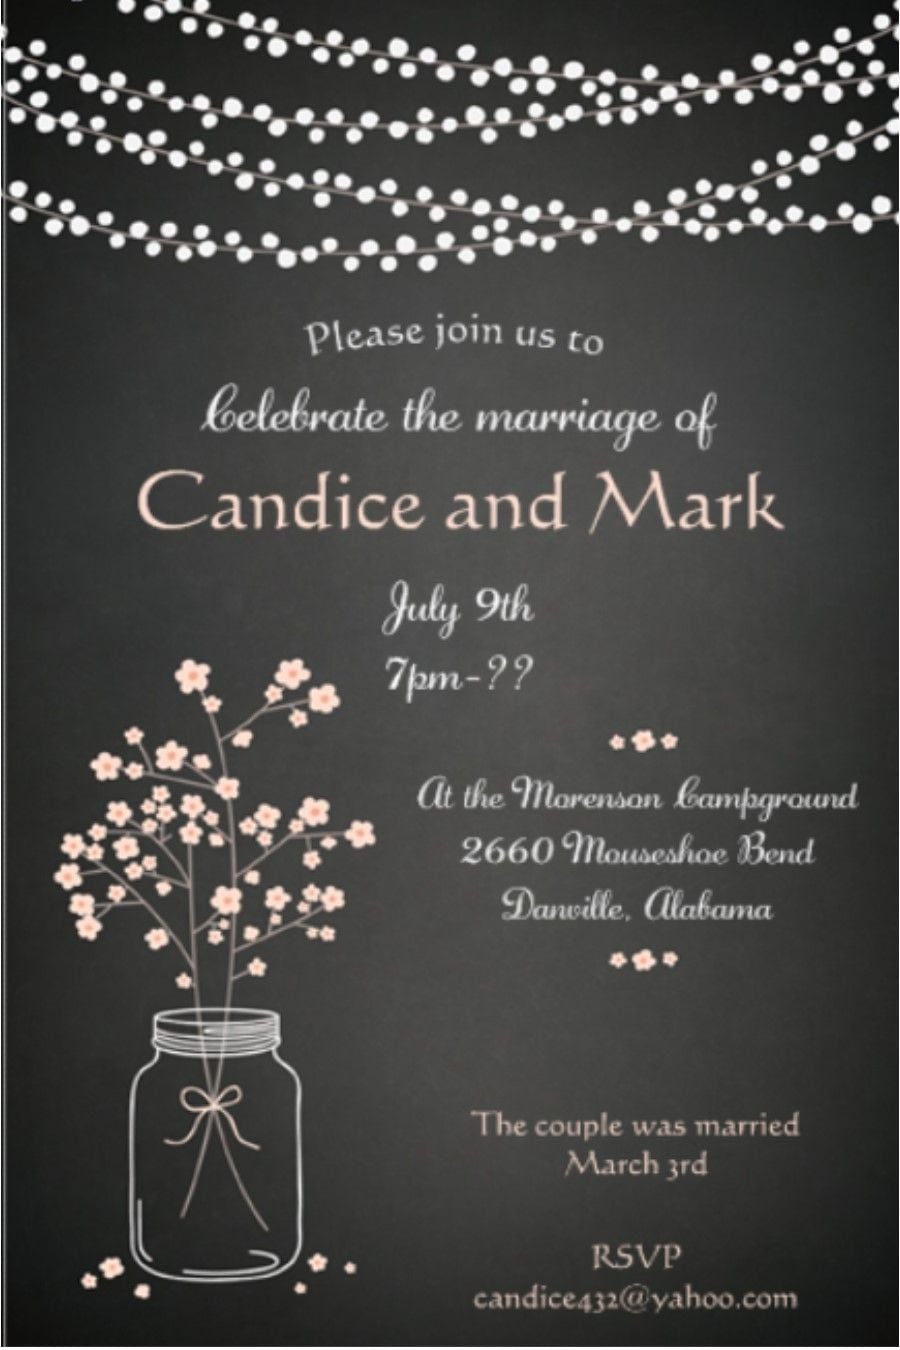 After The Wedding Party Invitations Or Elopement Party Invitations